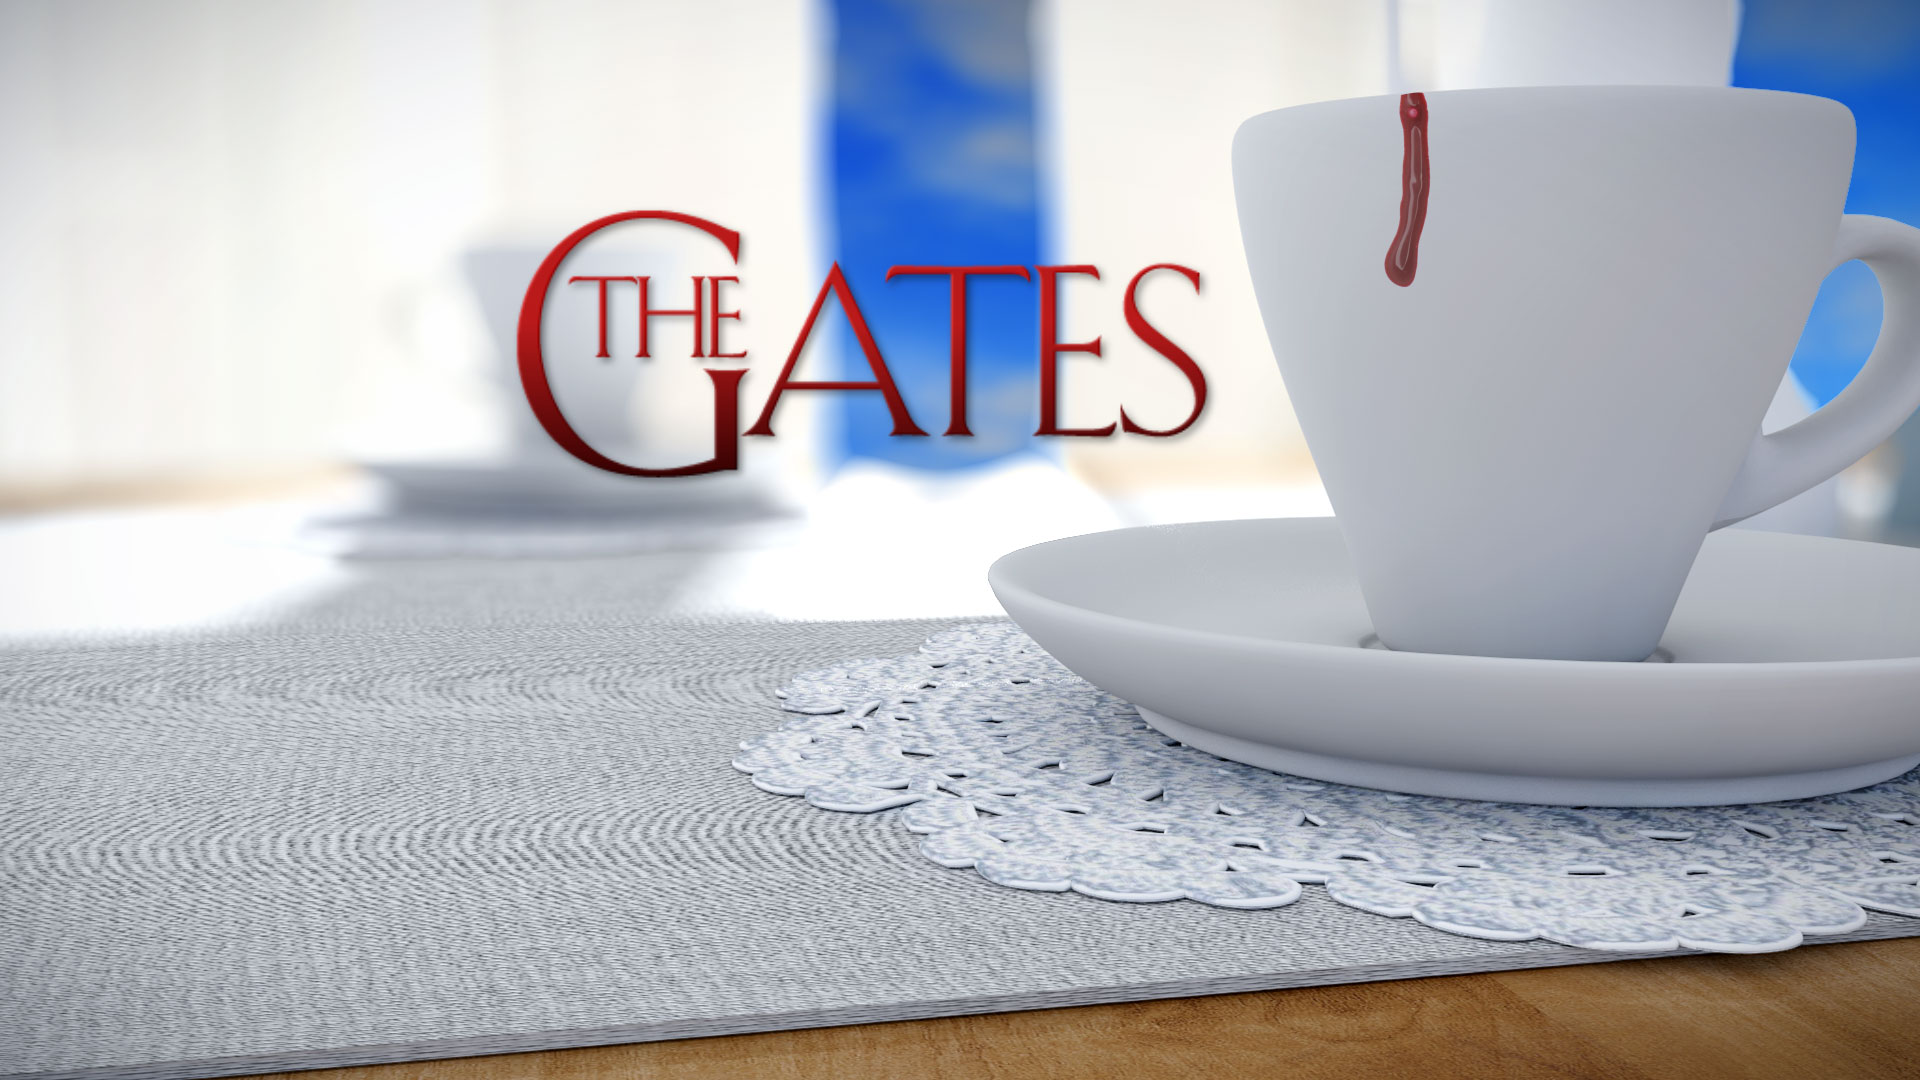 GATES_Logo06_TeaParty_mm_v4+(0.00.01.00).jpg